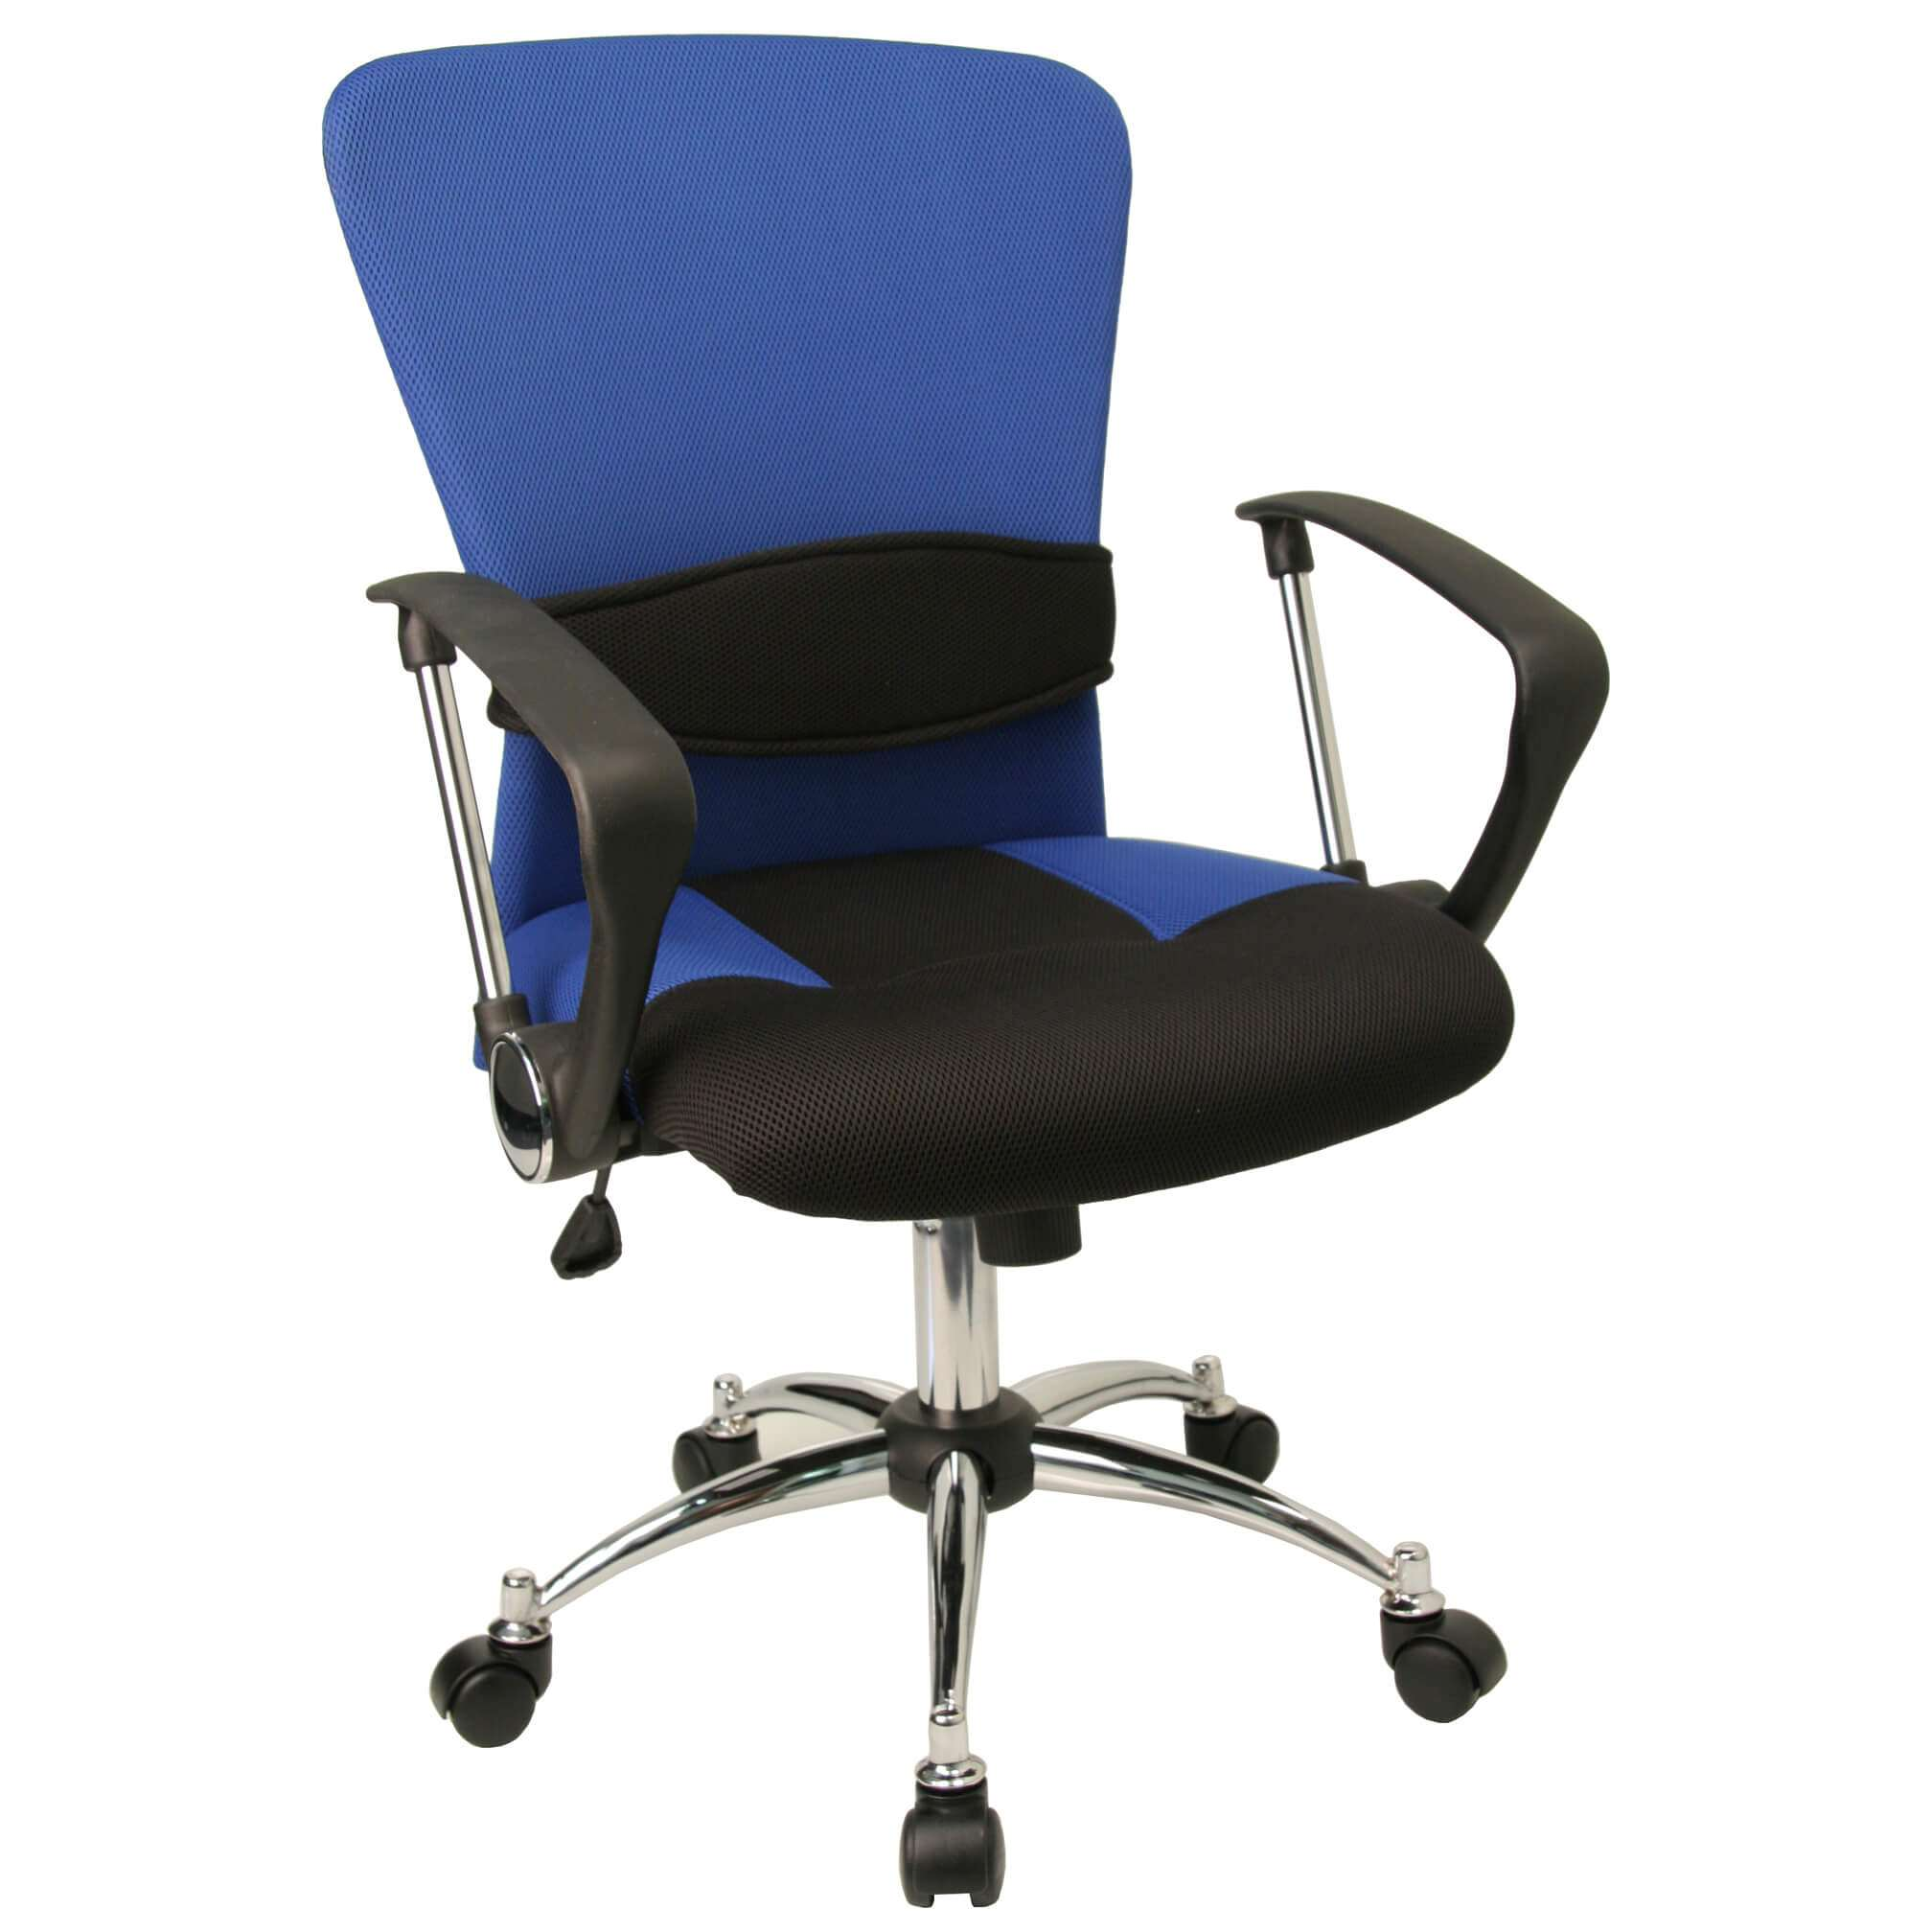 Office Furniture: Night Star Lumbar Support Office Chair